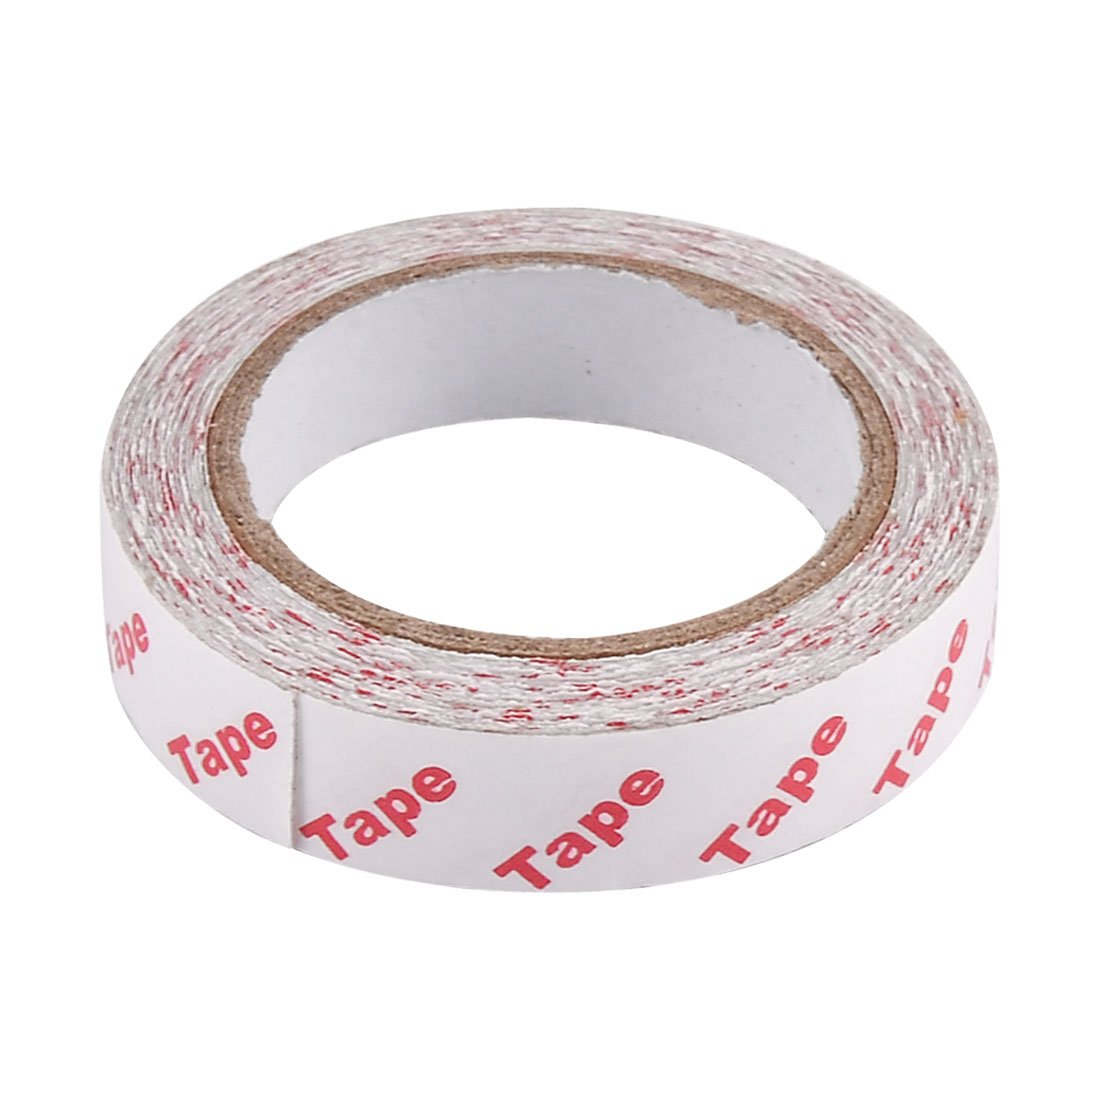 uxcell Edge Guard Cushion Protector Double-Sided Adhesive Tape 4M 14Ft Long US-SA-AJD-133496